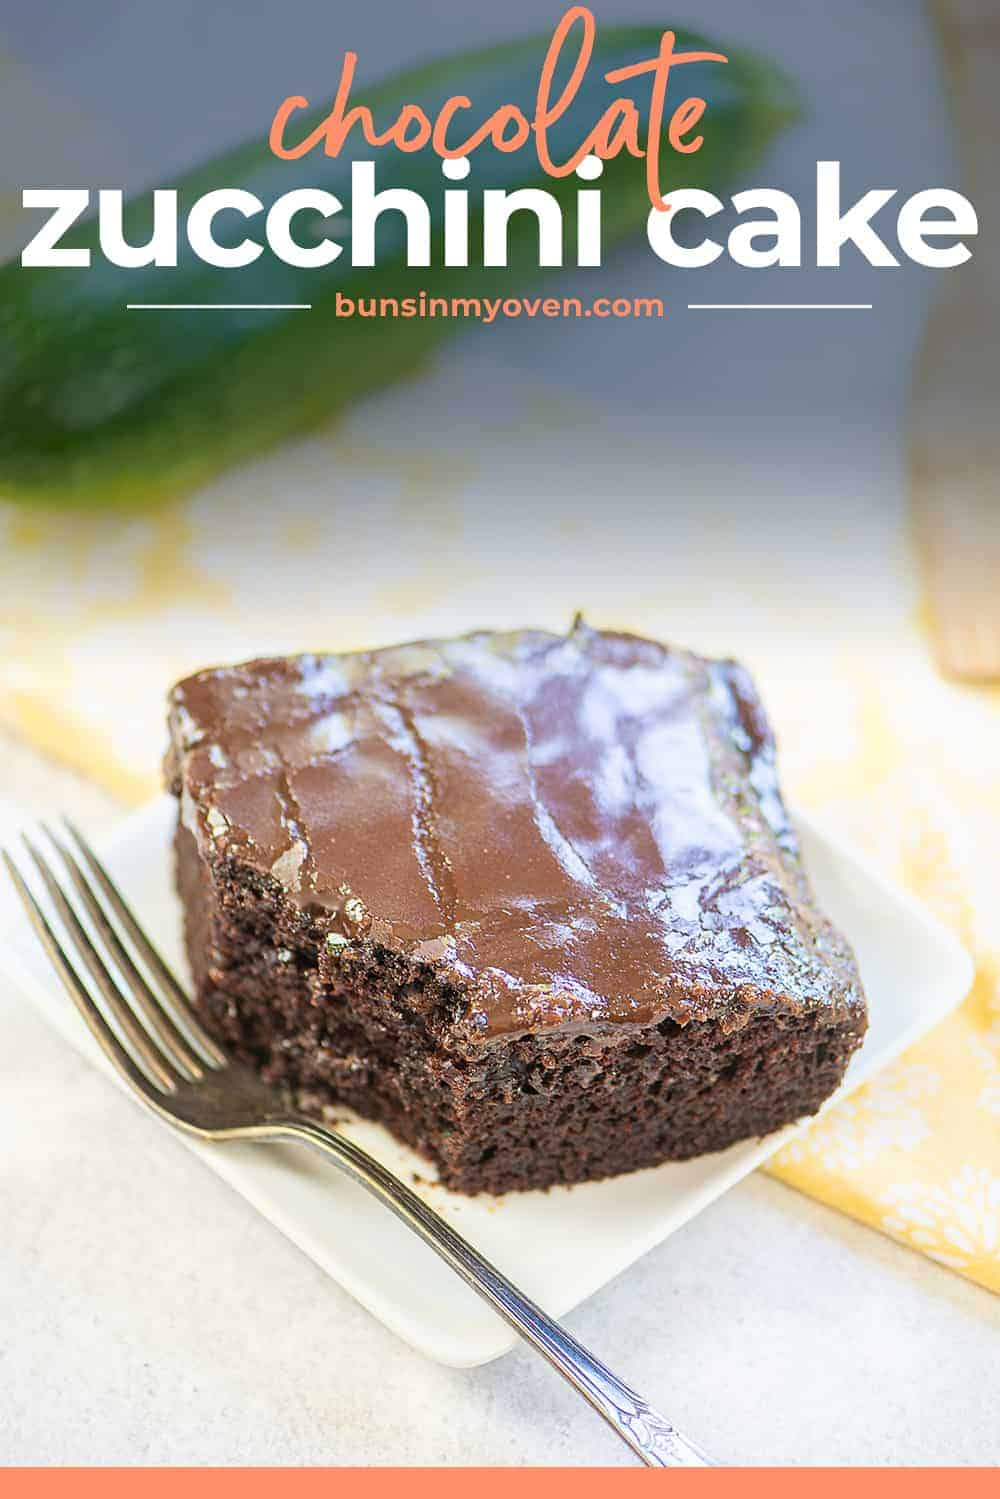 chocolate zucchini cake on plate with a fork.